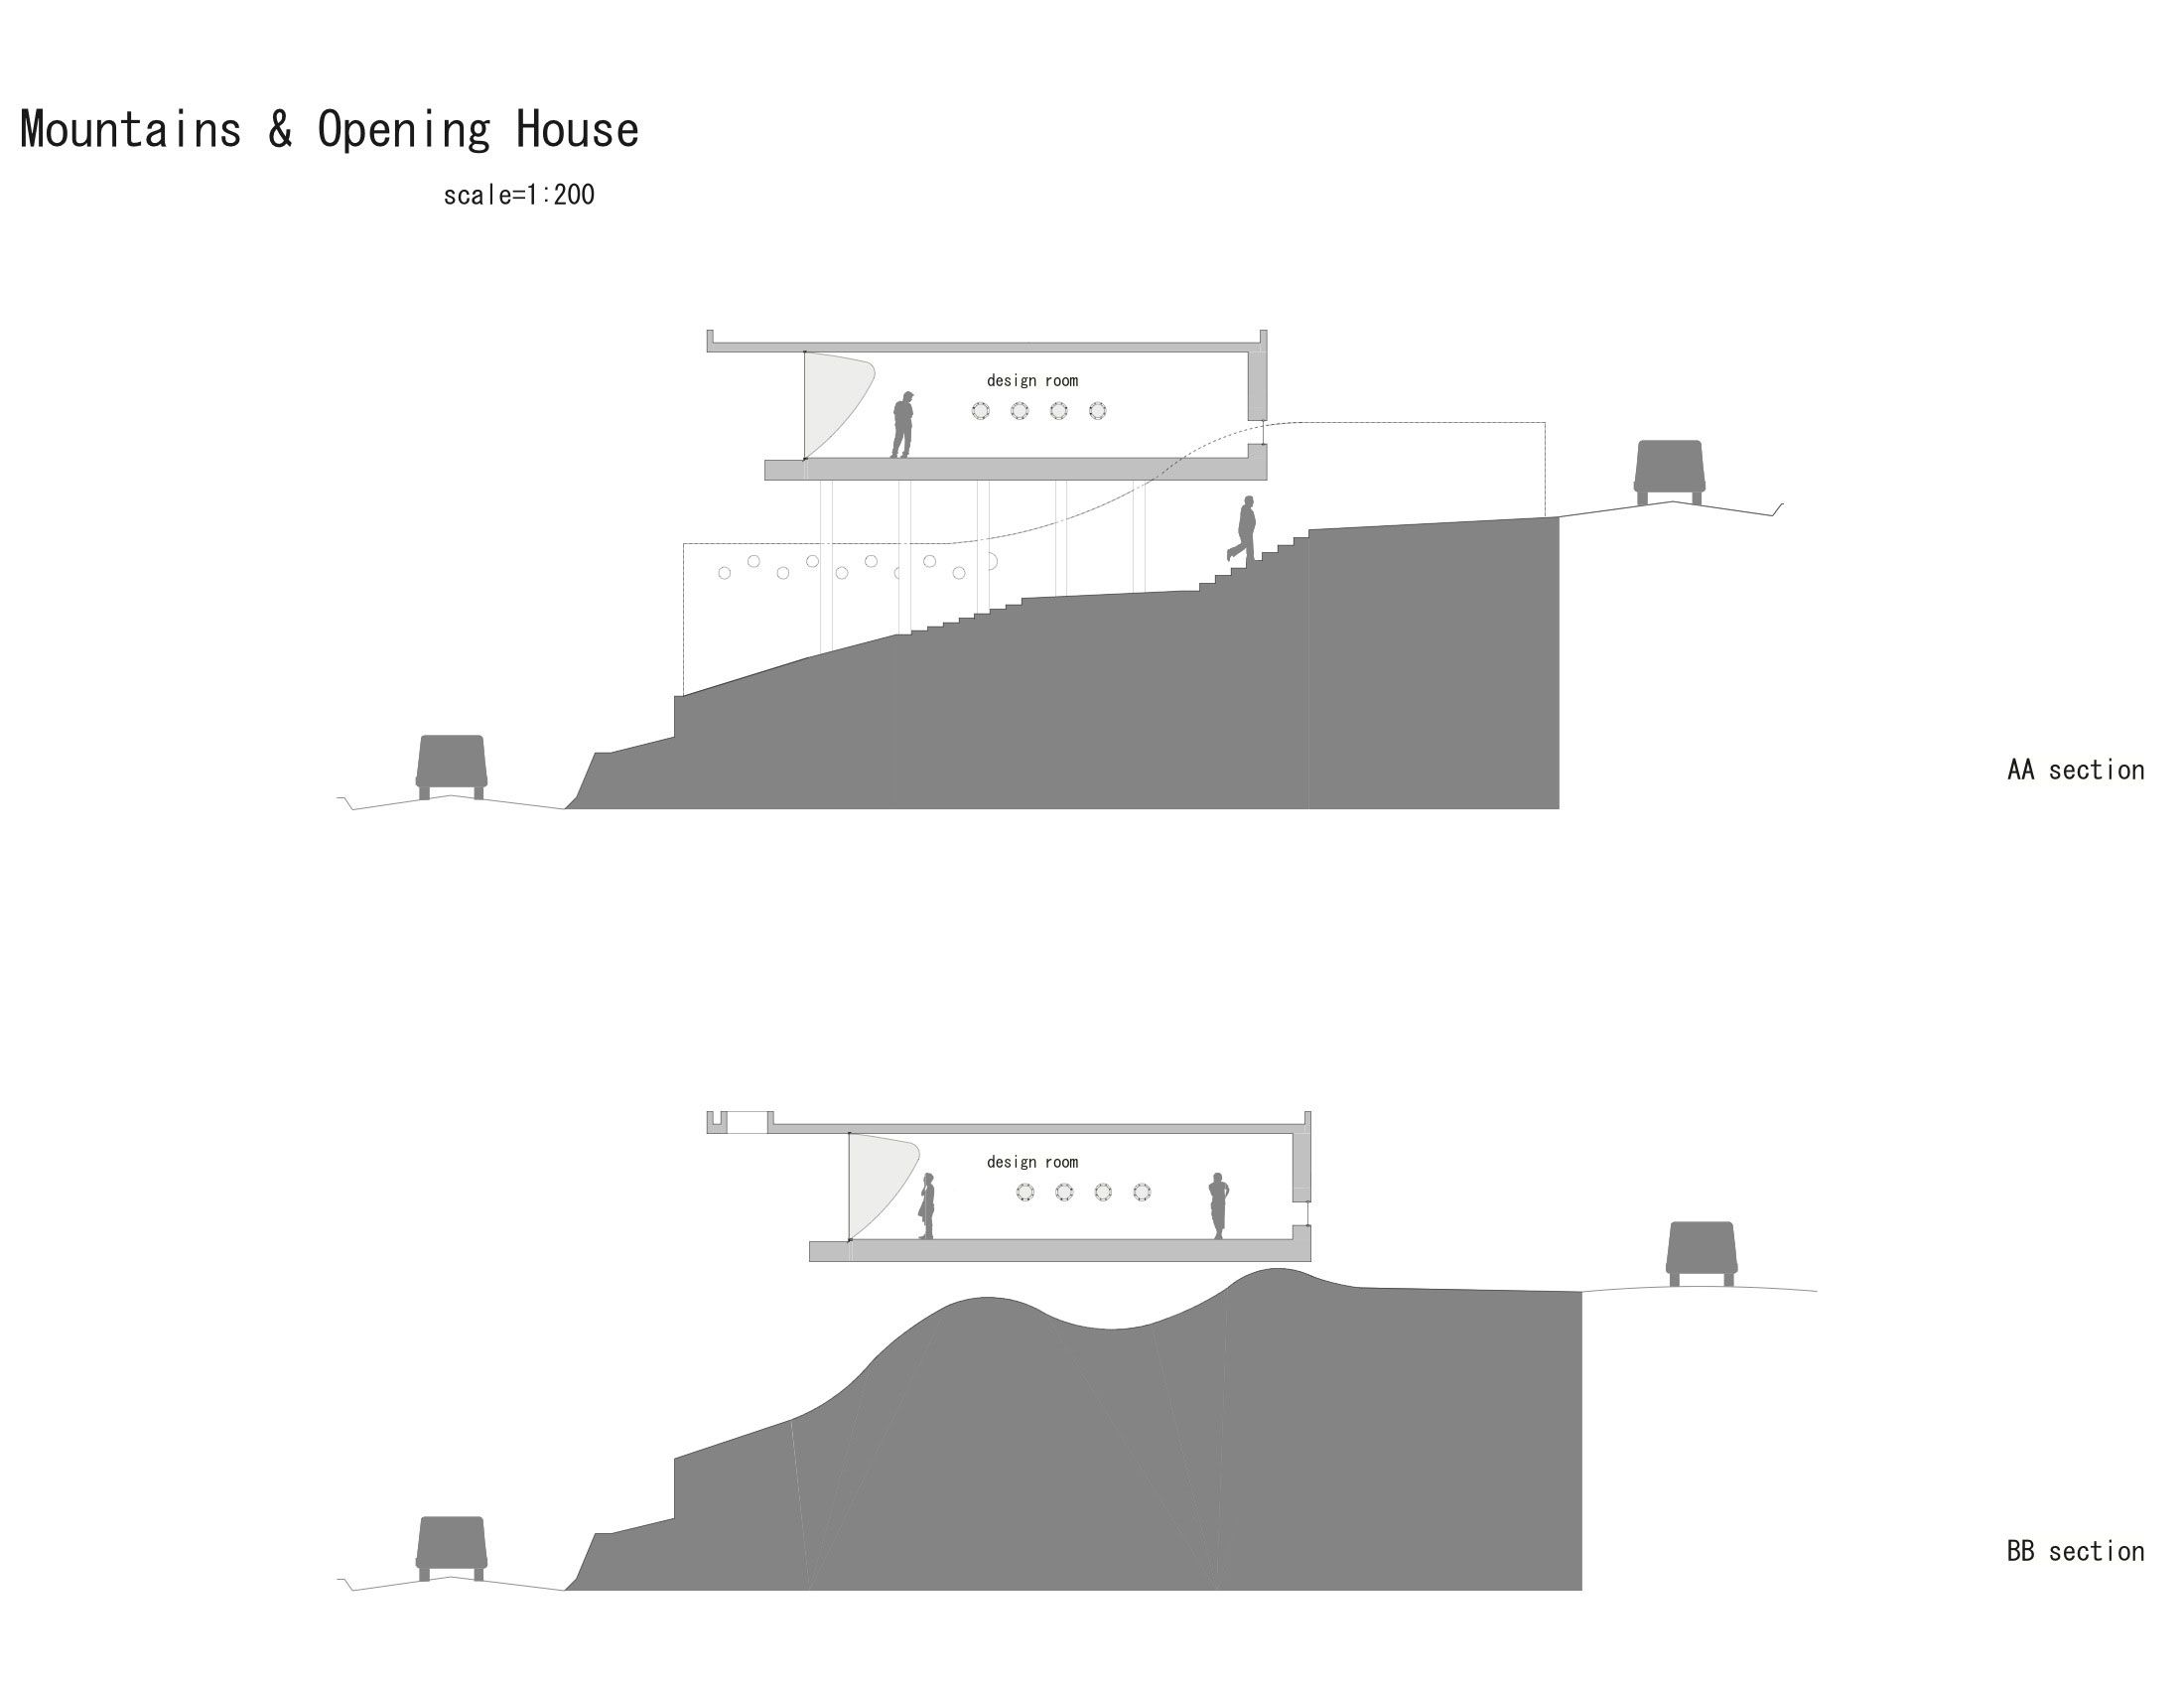 Mountains-and-Opening-House-23